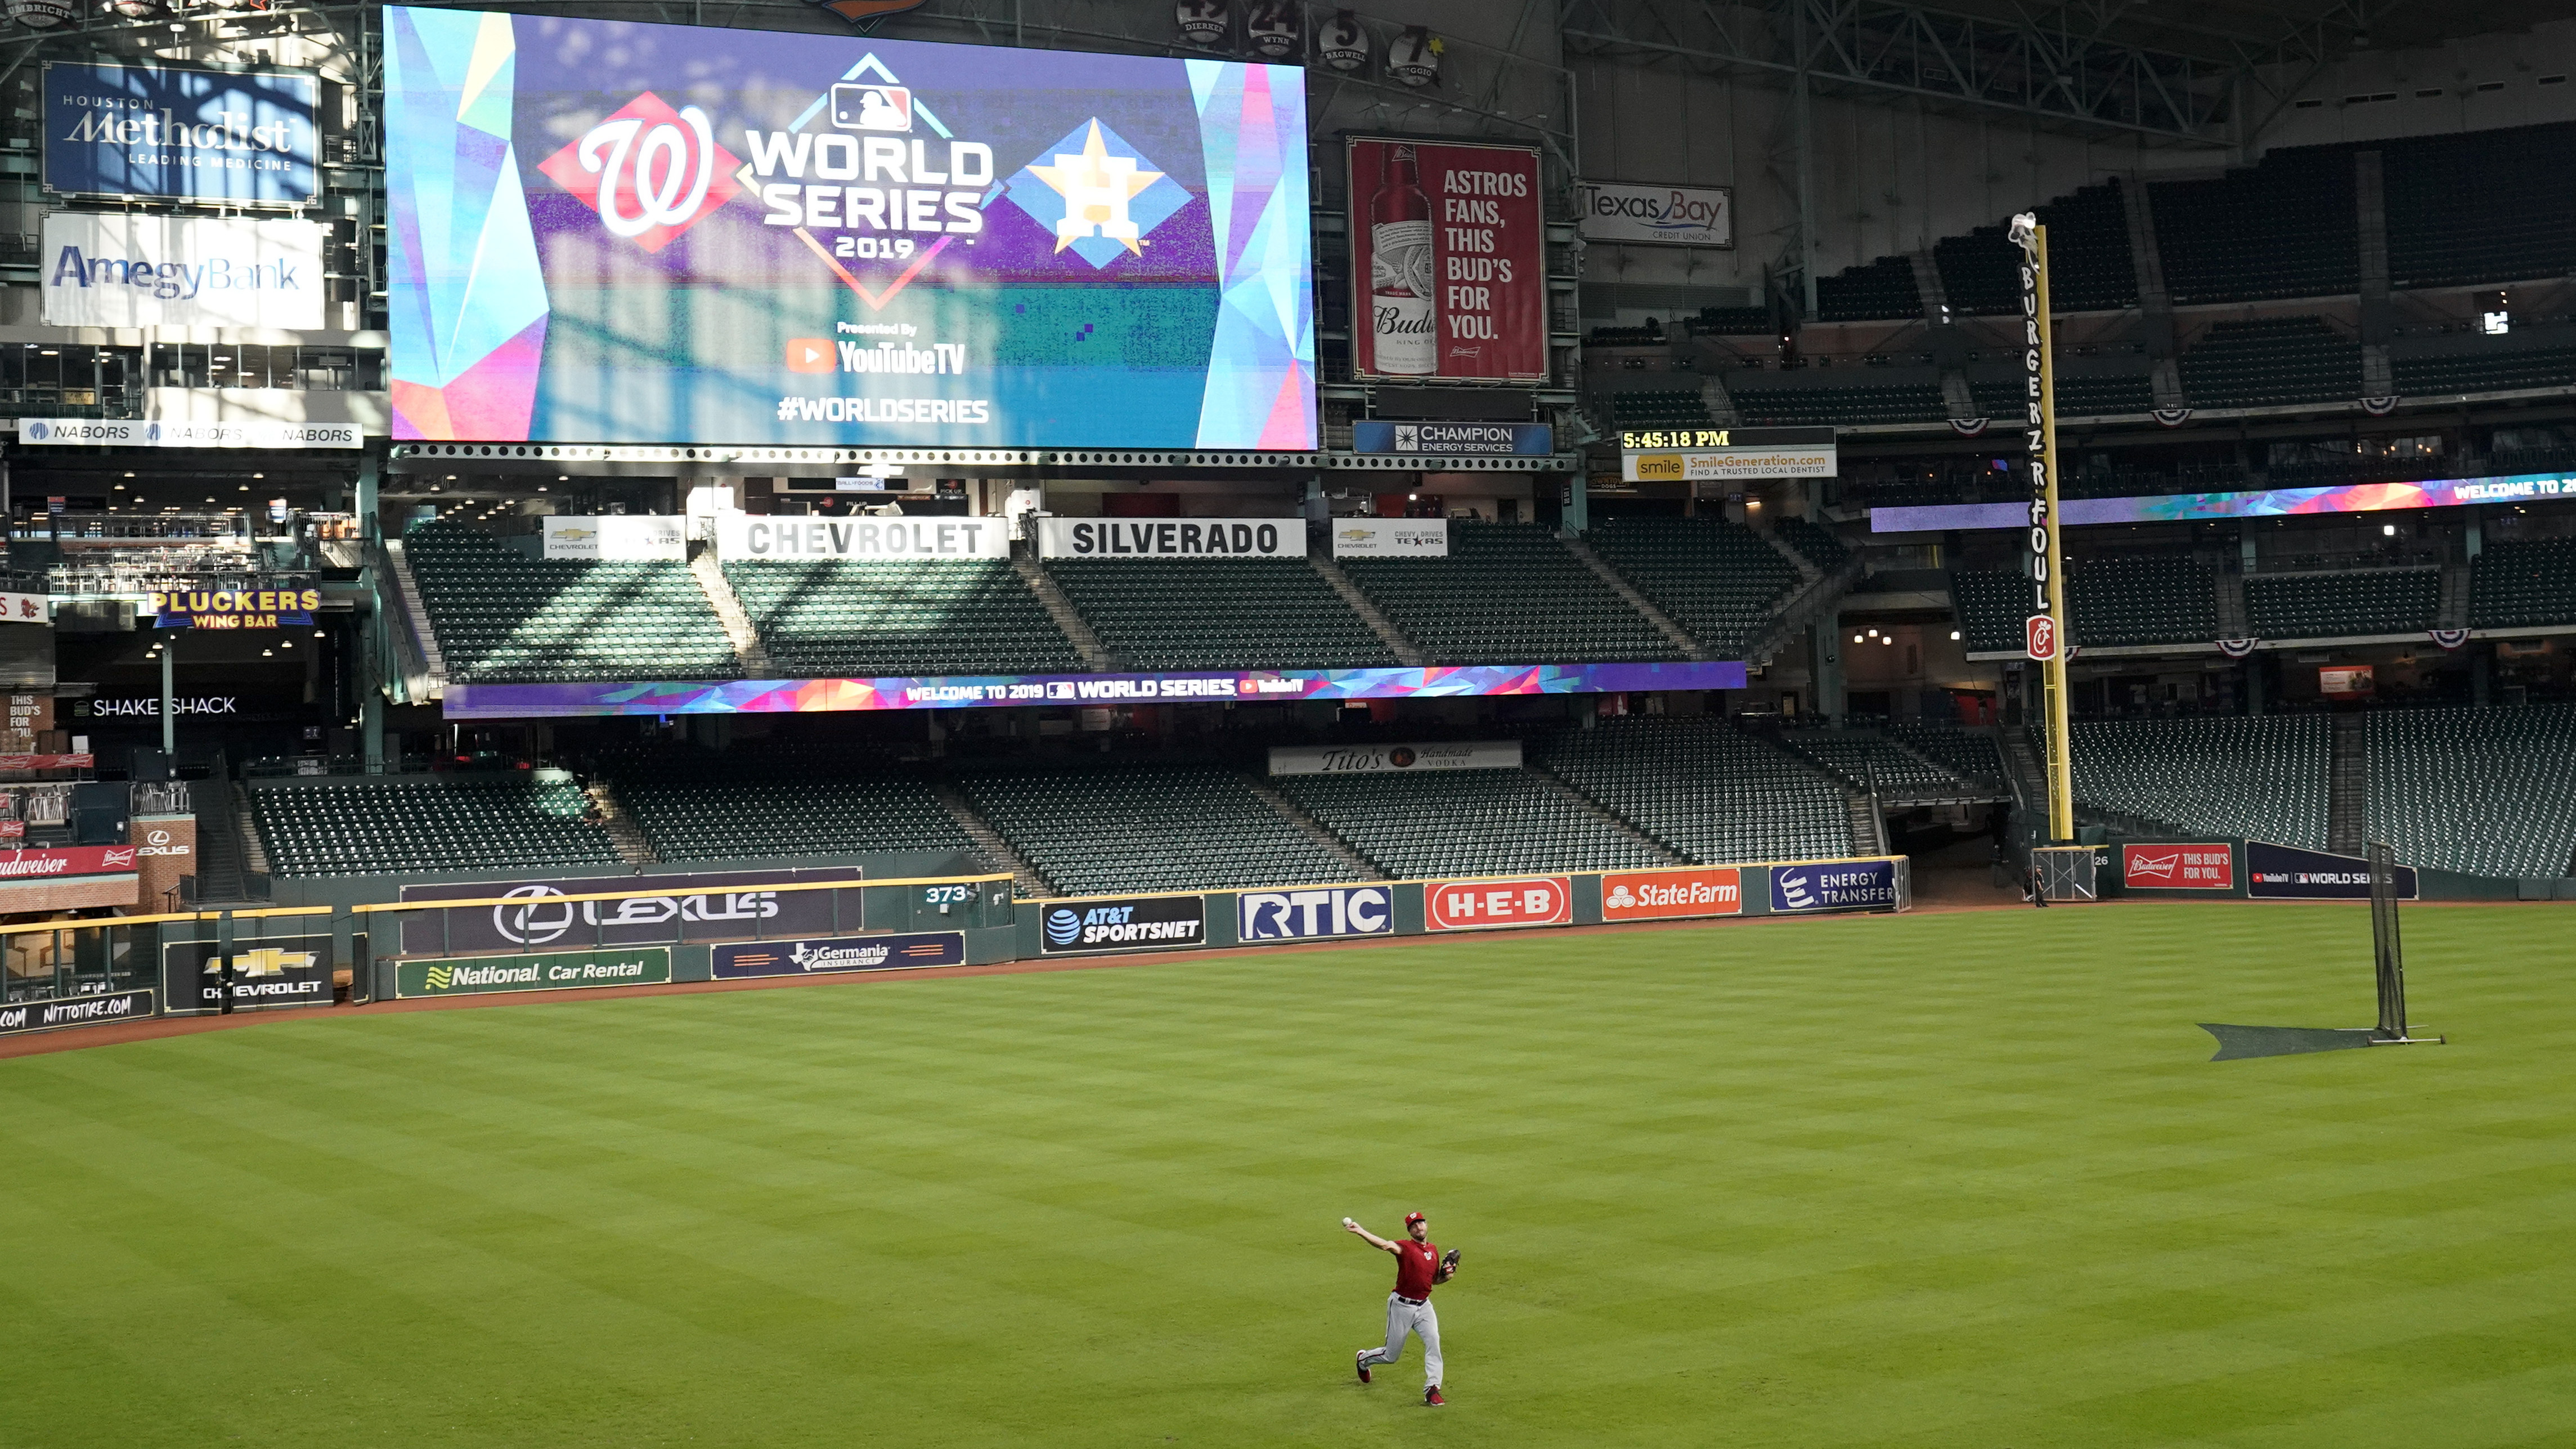 Astros And Nationals Primed To Start 2019 World Series In Houston